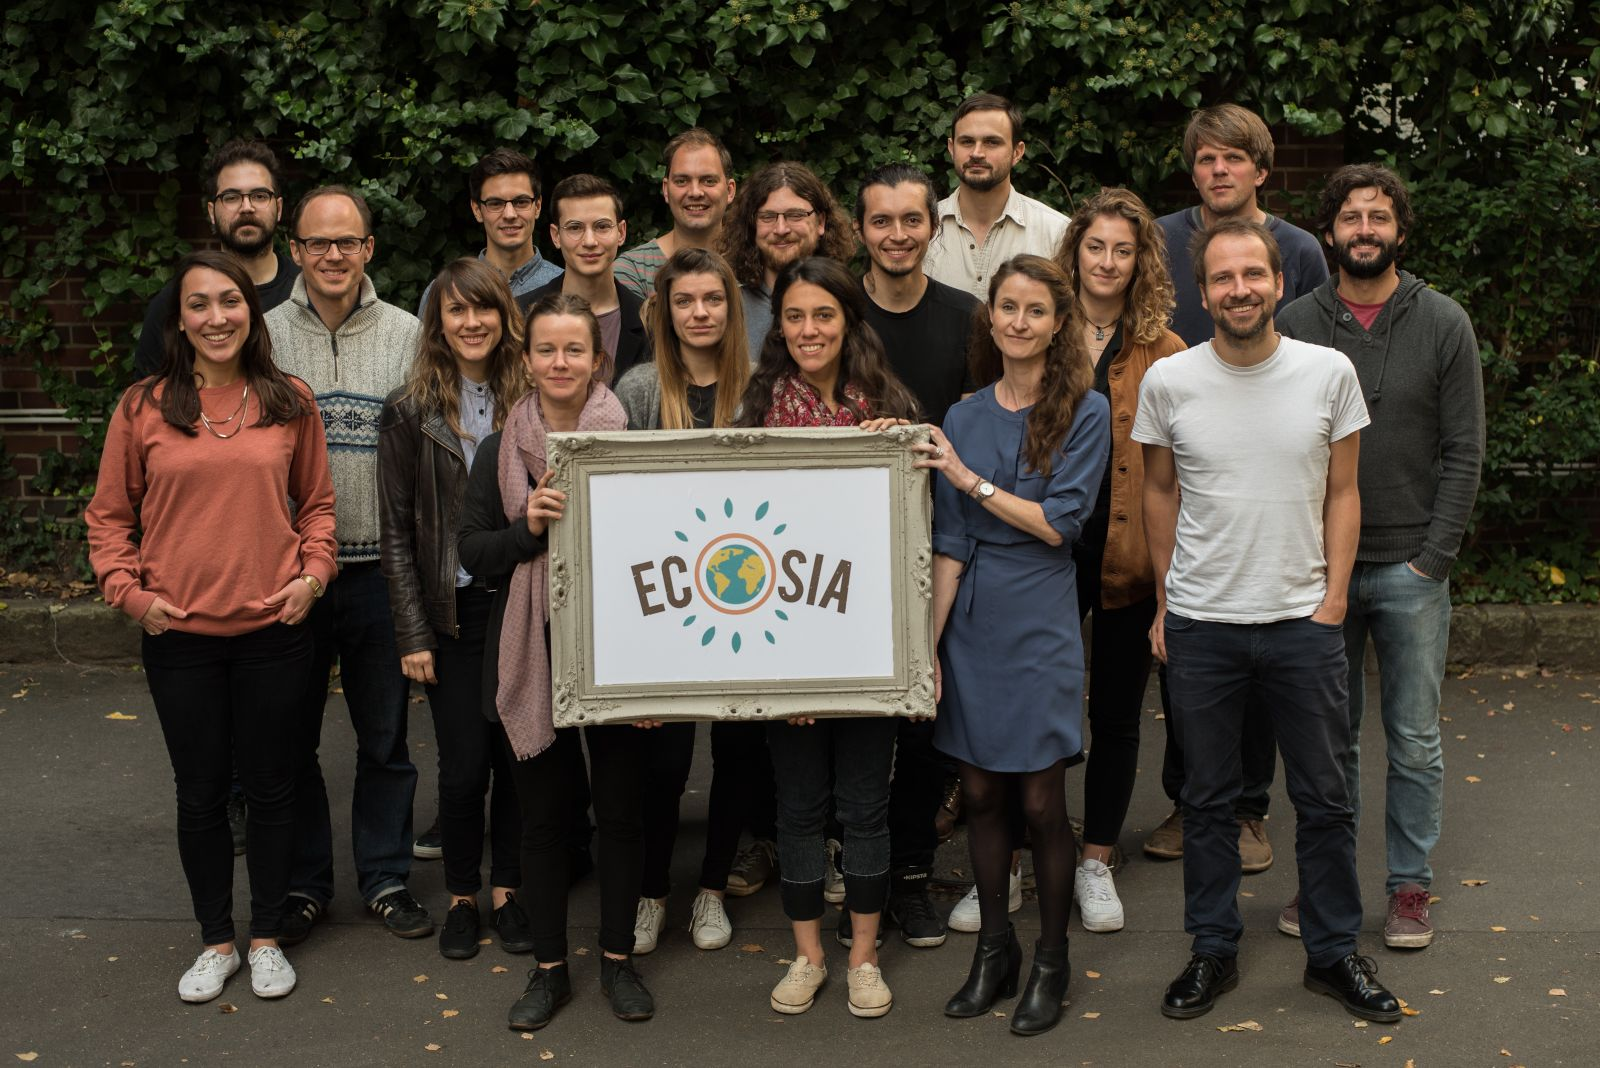 The Ecosia team at the Berlin office - photo credit: Shane McMillan